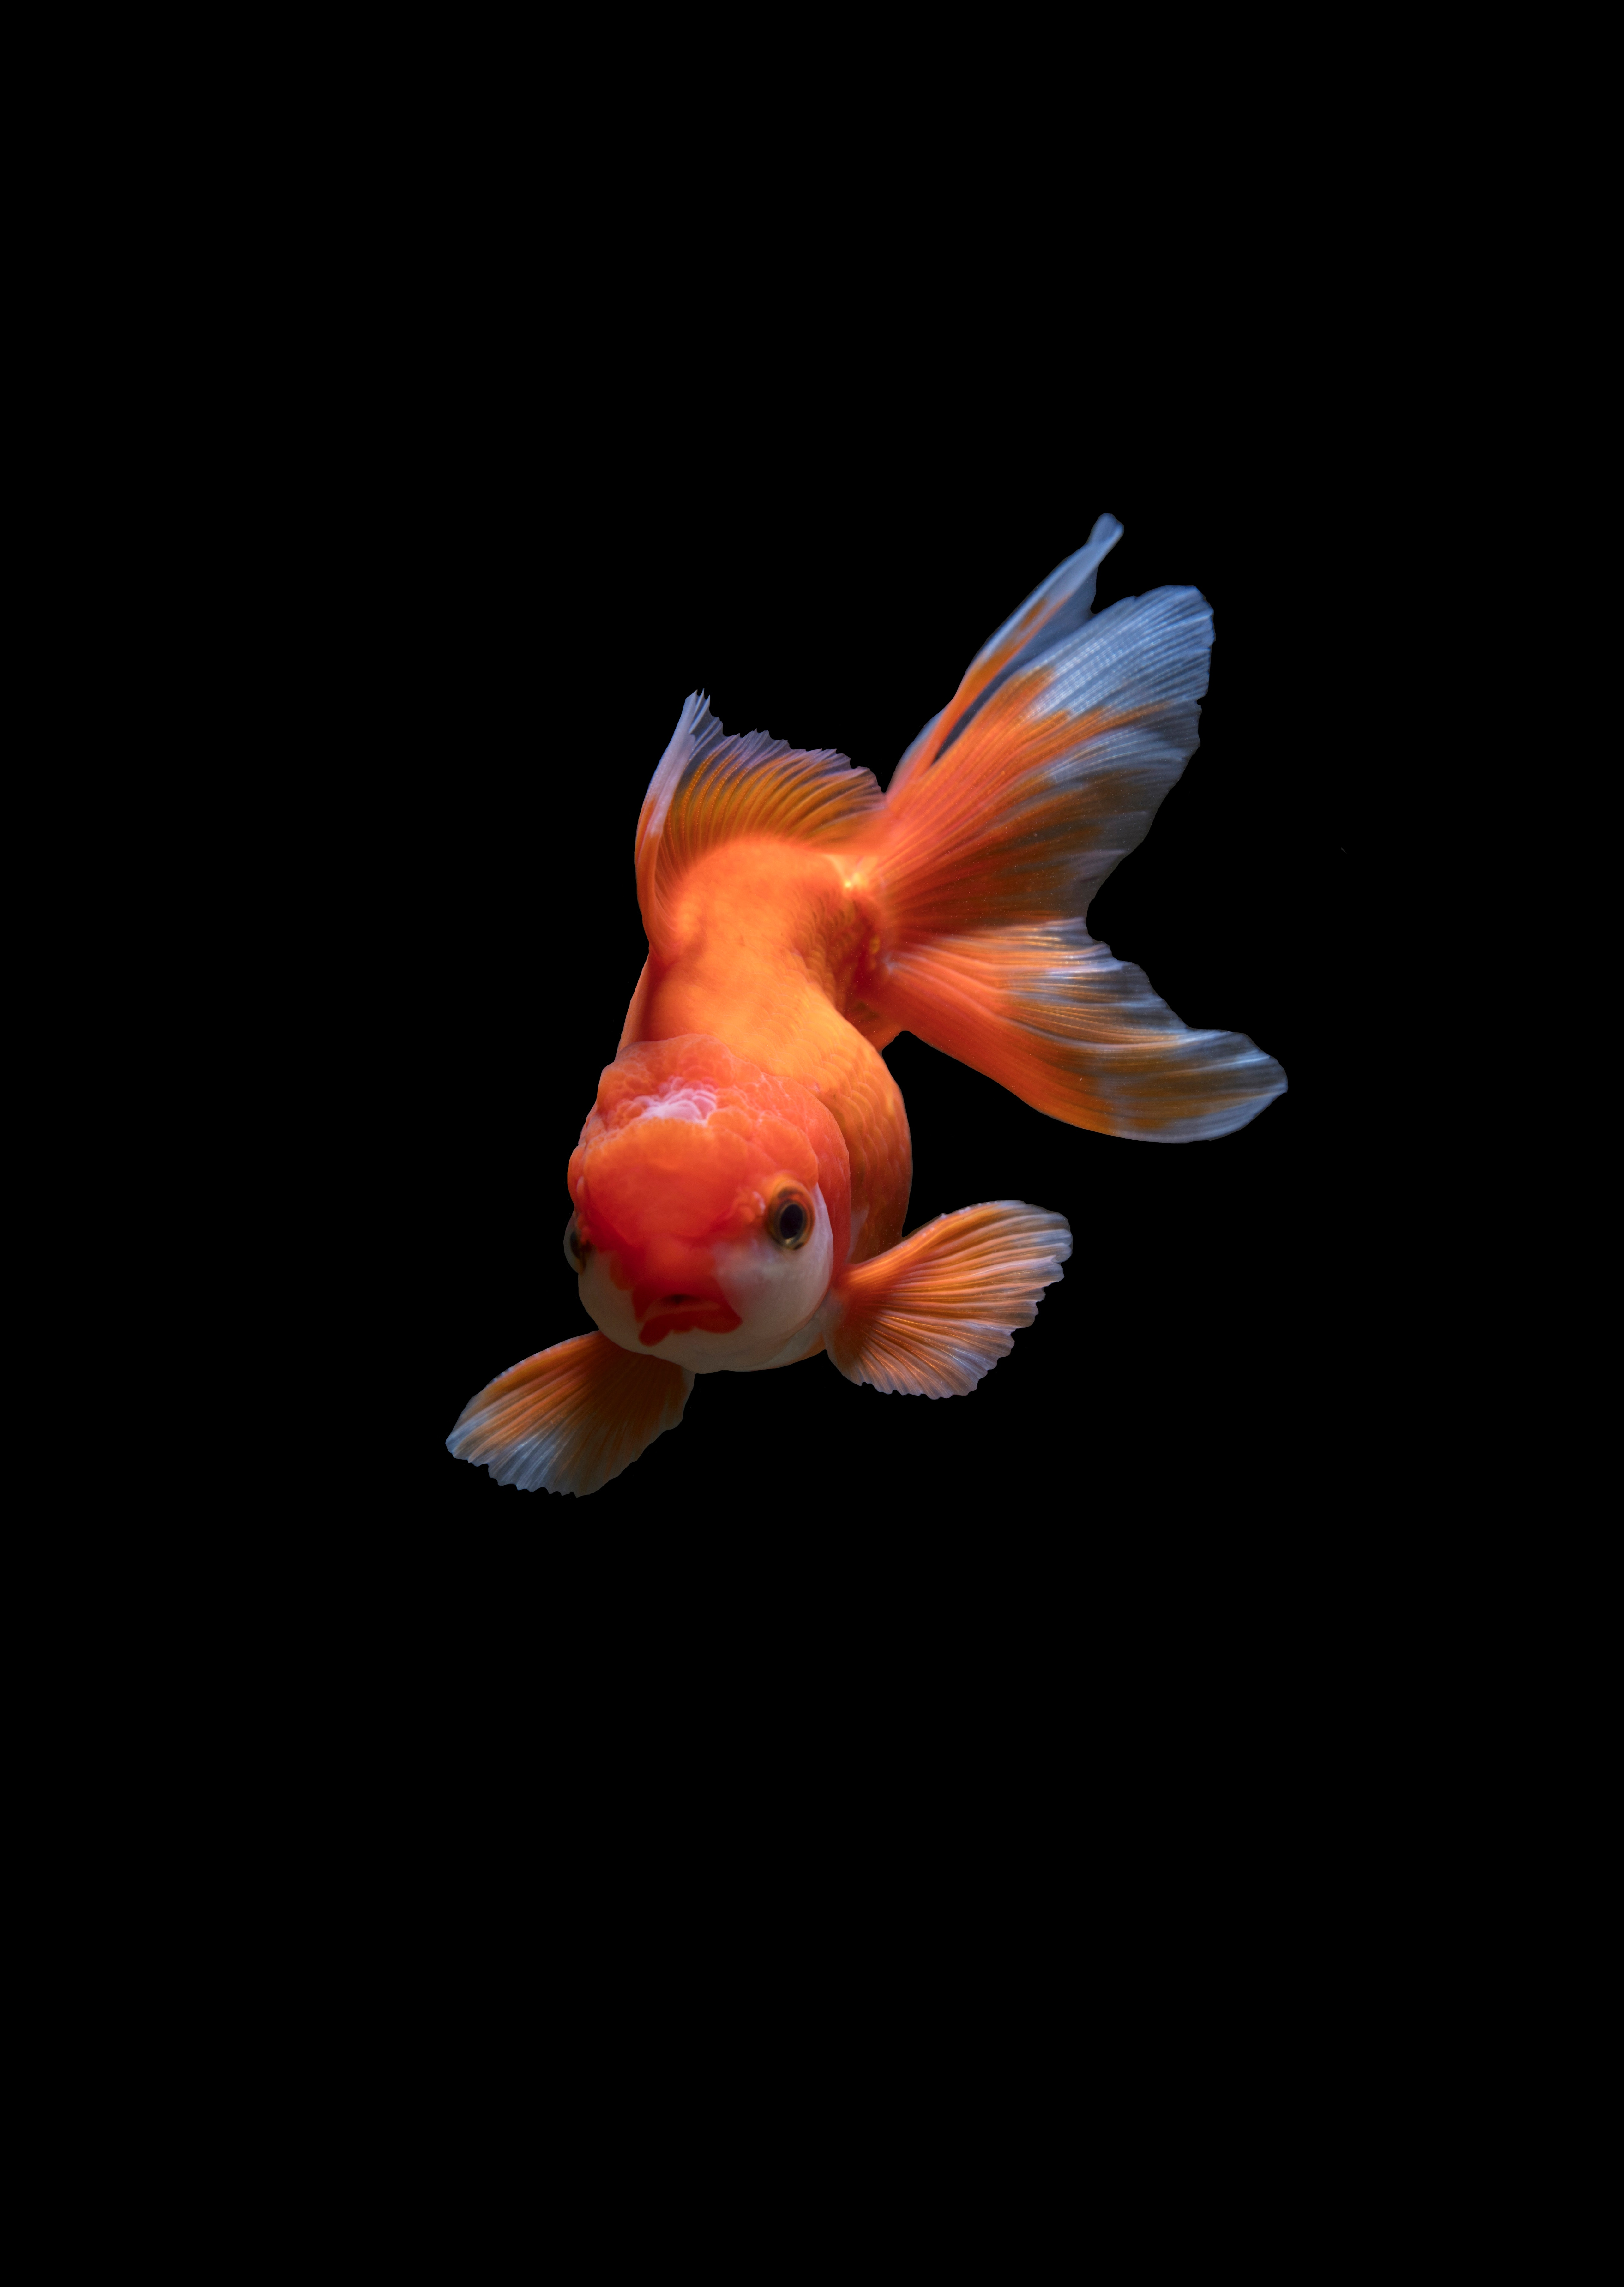 92570 download wallpaper Animals, Underwater World, To Swim, Swim, Small Fish, Fishy screensavers and pictures for free